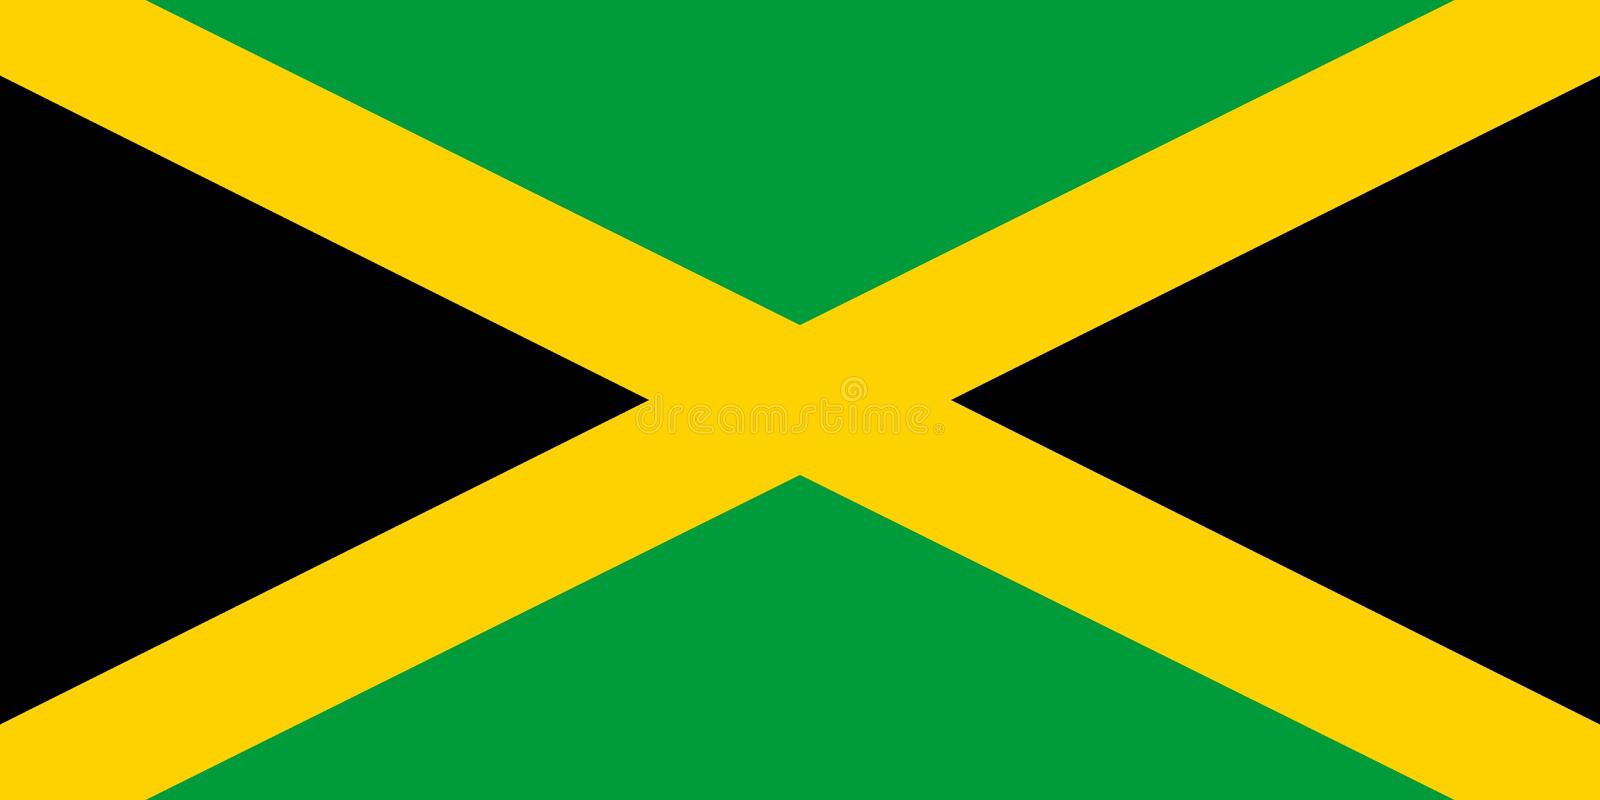 Flag in colors of Jamaica, image. Flag in colors of Jamaica, image royalty free illustration